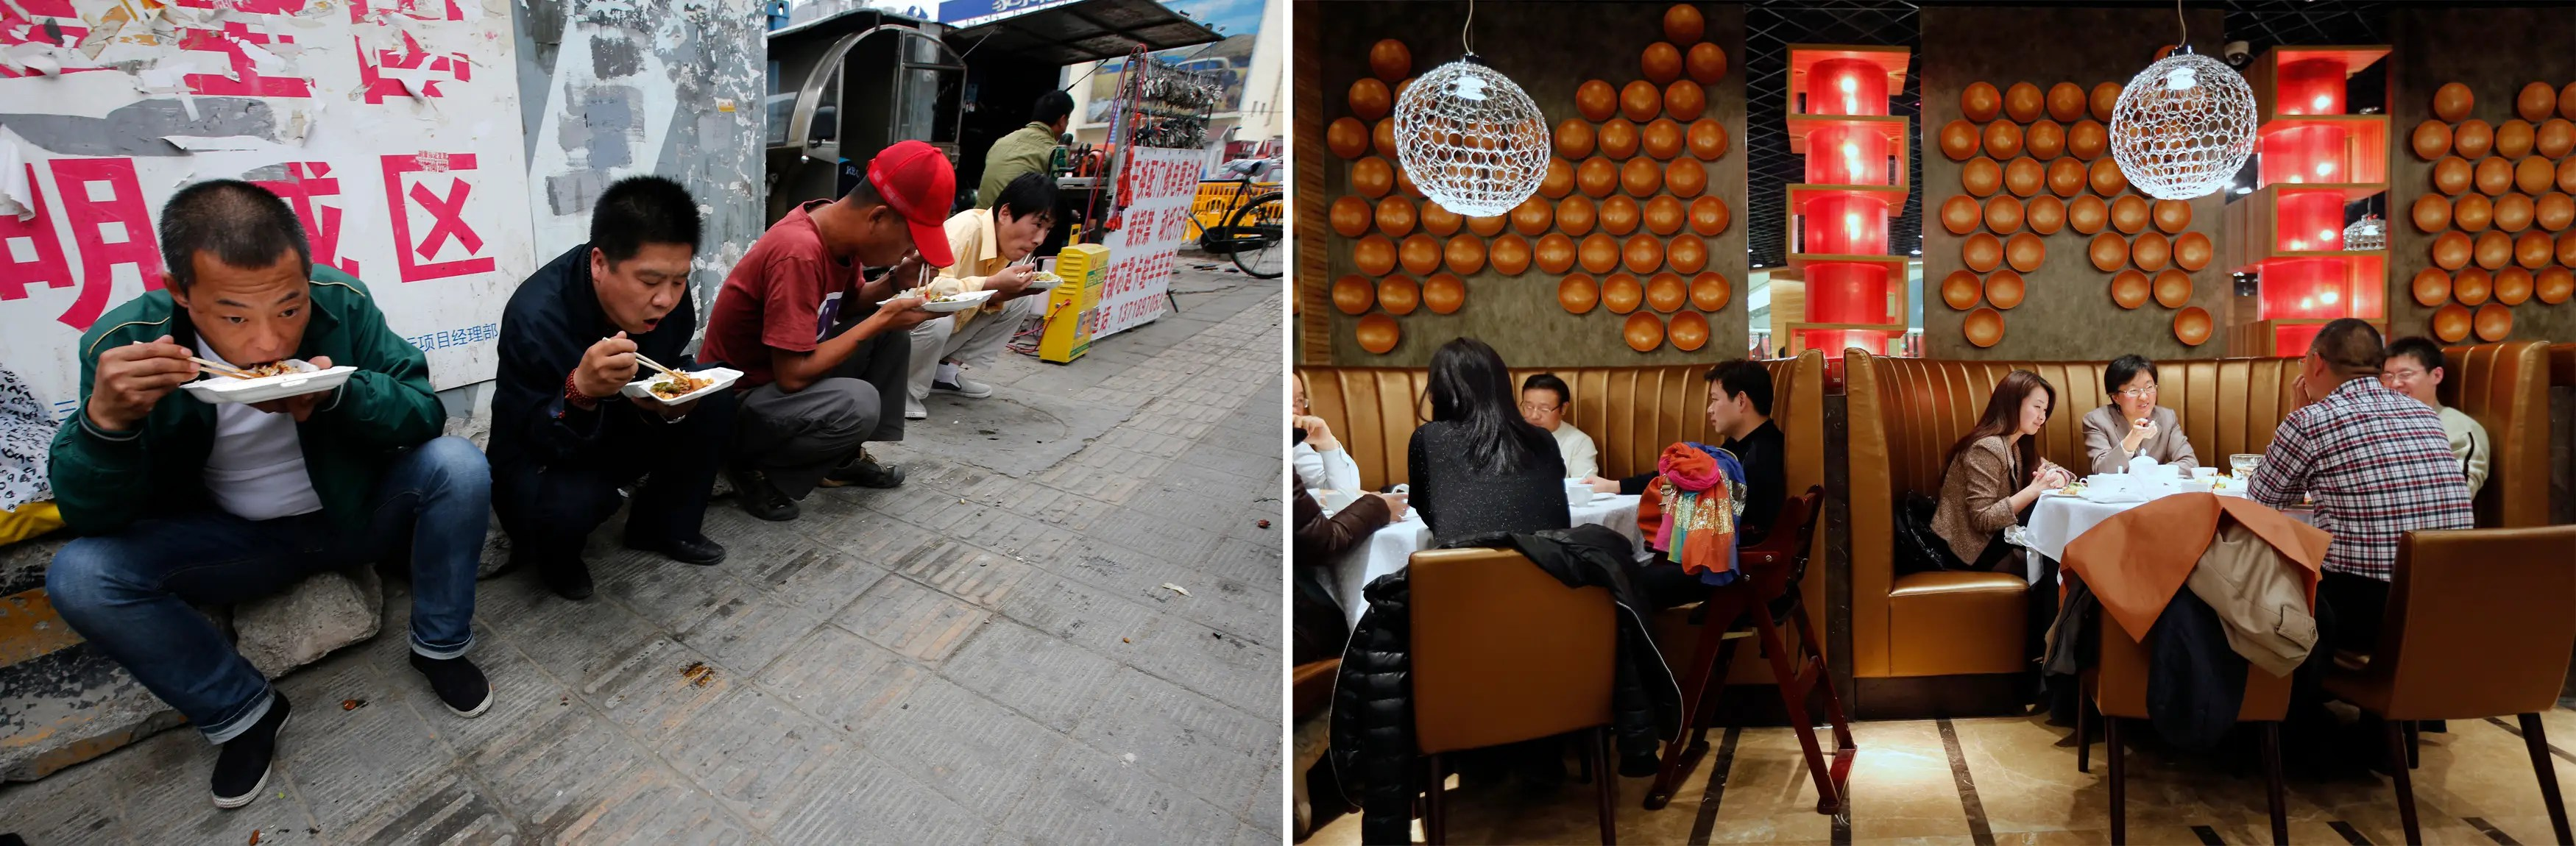 (L) Men eat their lunch on a street for about $1.60 and (R) people having dinner worth about $60 - $80 at a restaurant in Beijing.